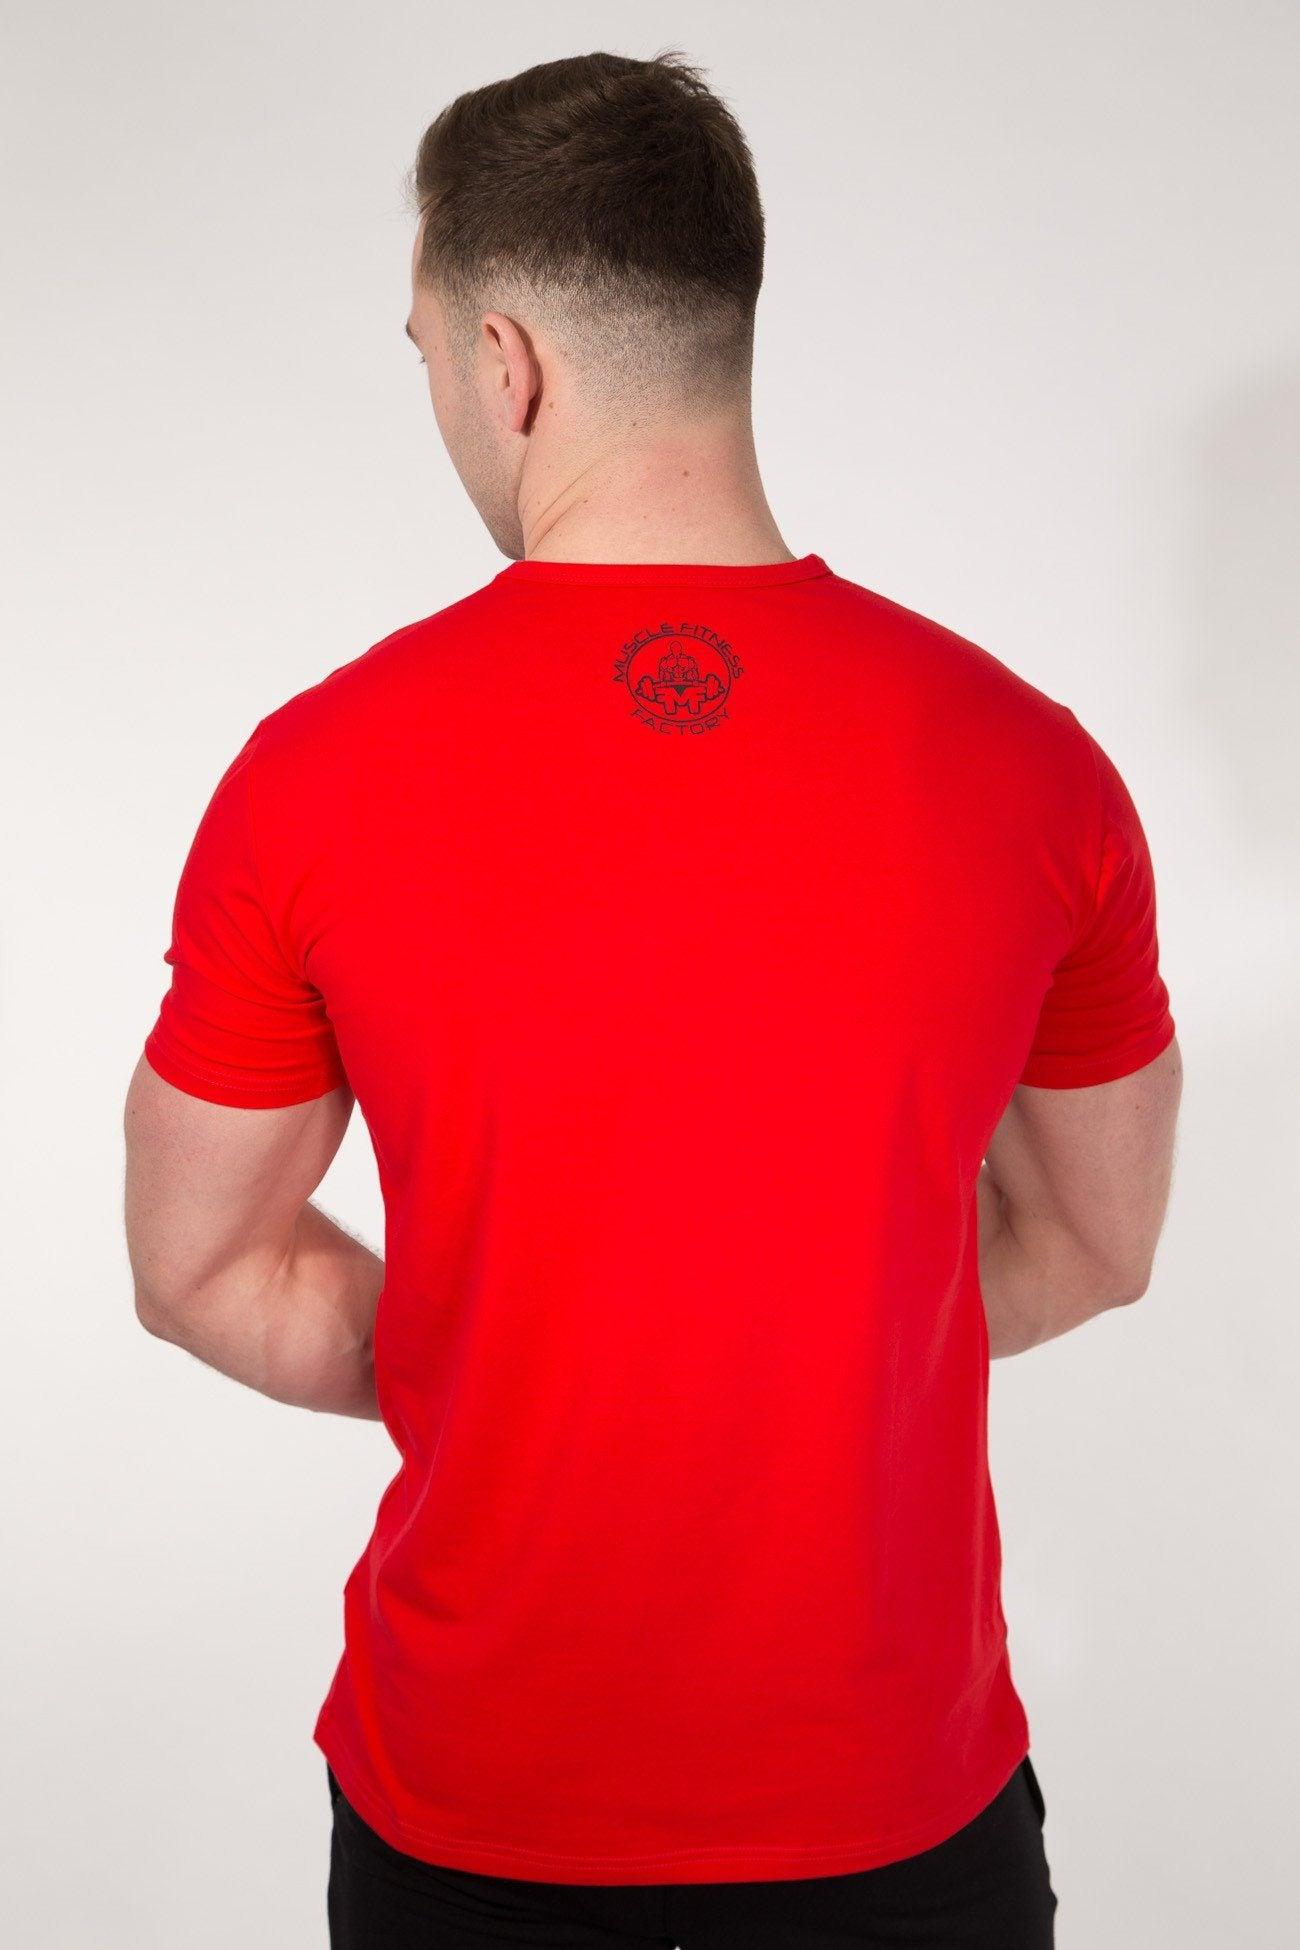 MFF Spartan T-Shirt <br> Red/Black - Muscle Fitness Factory